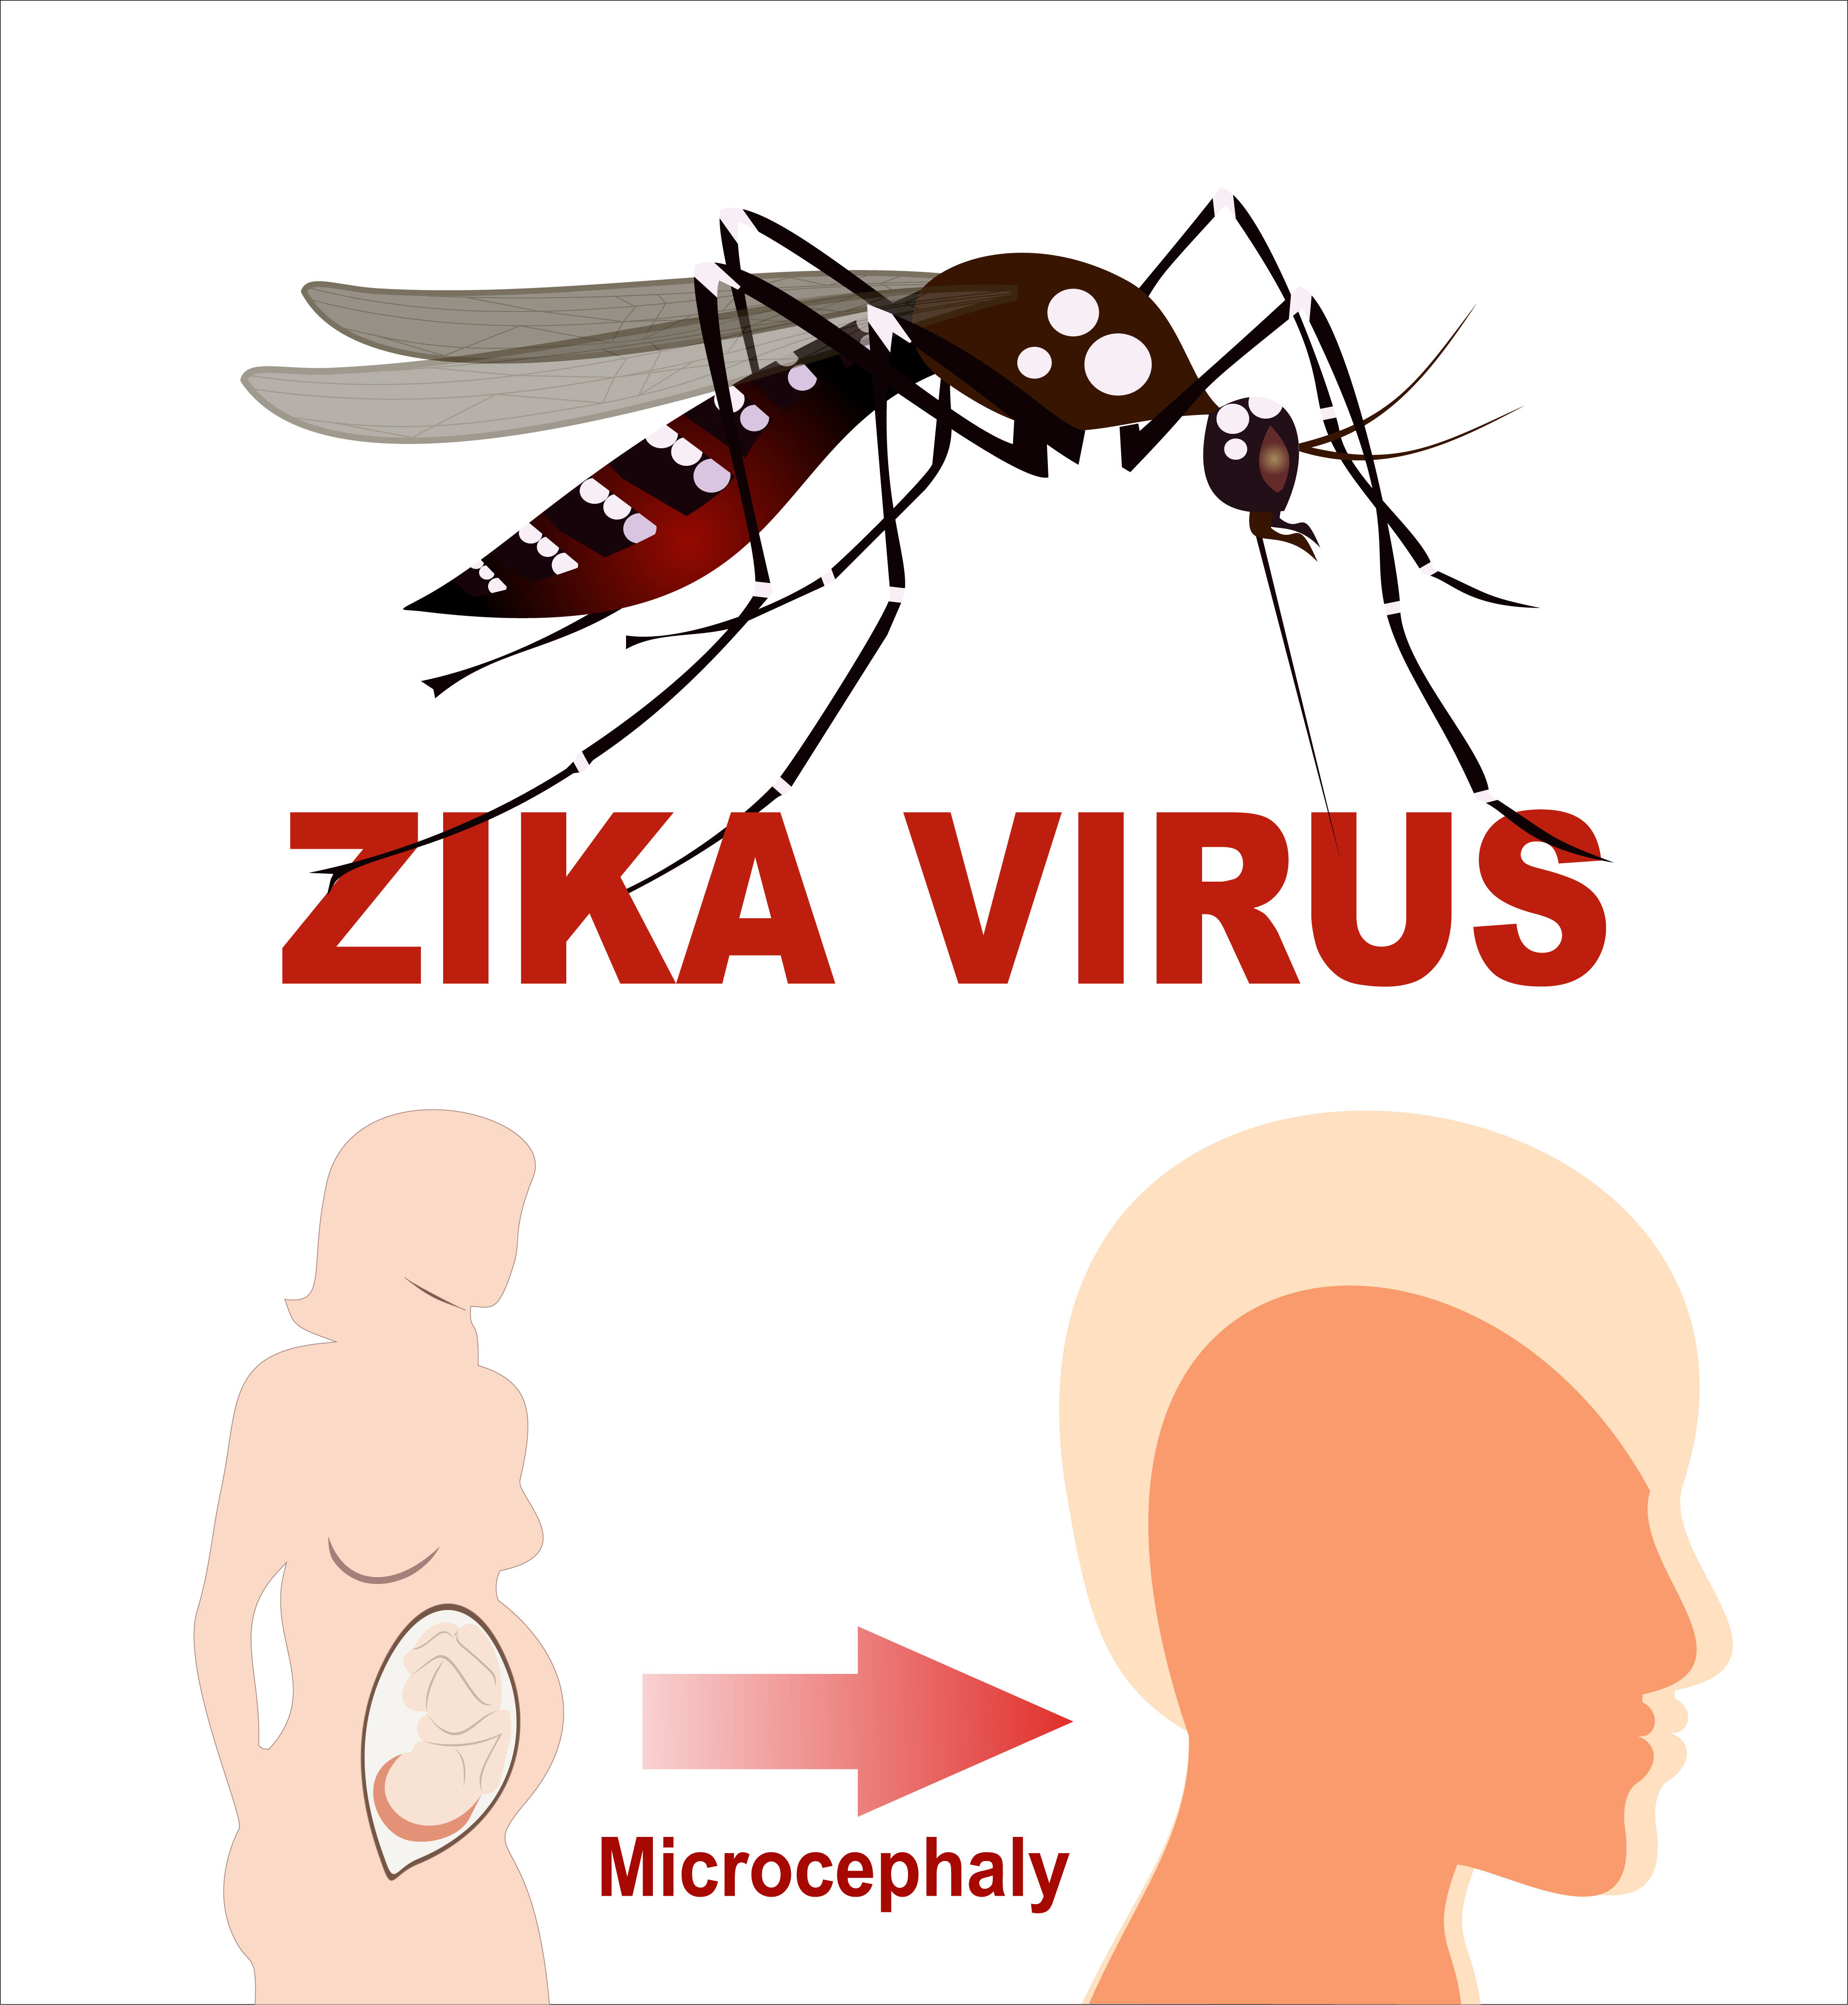 zika virus in Jacksonville